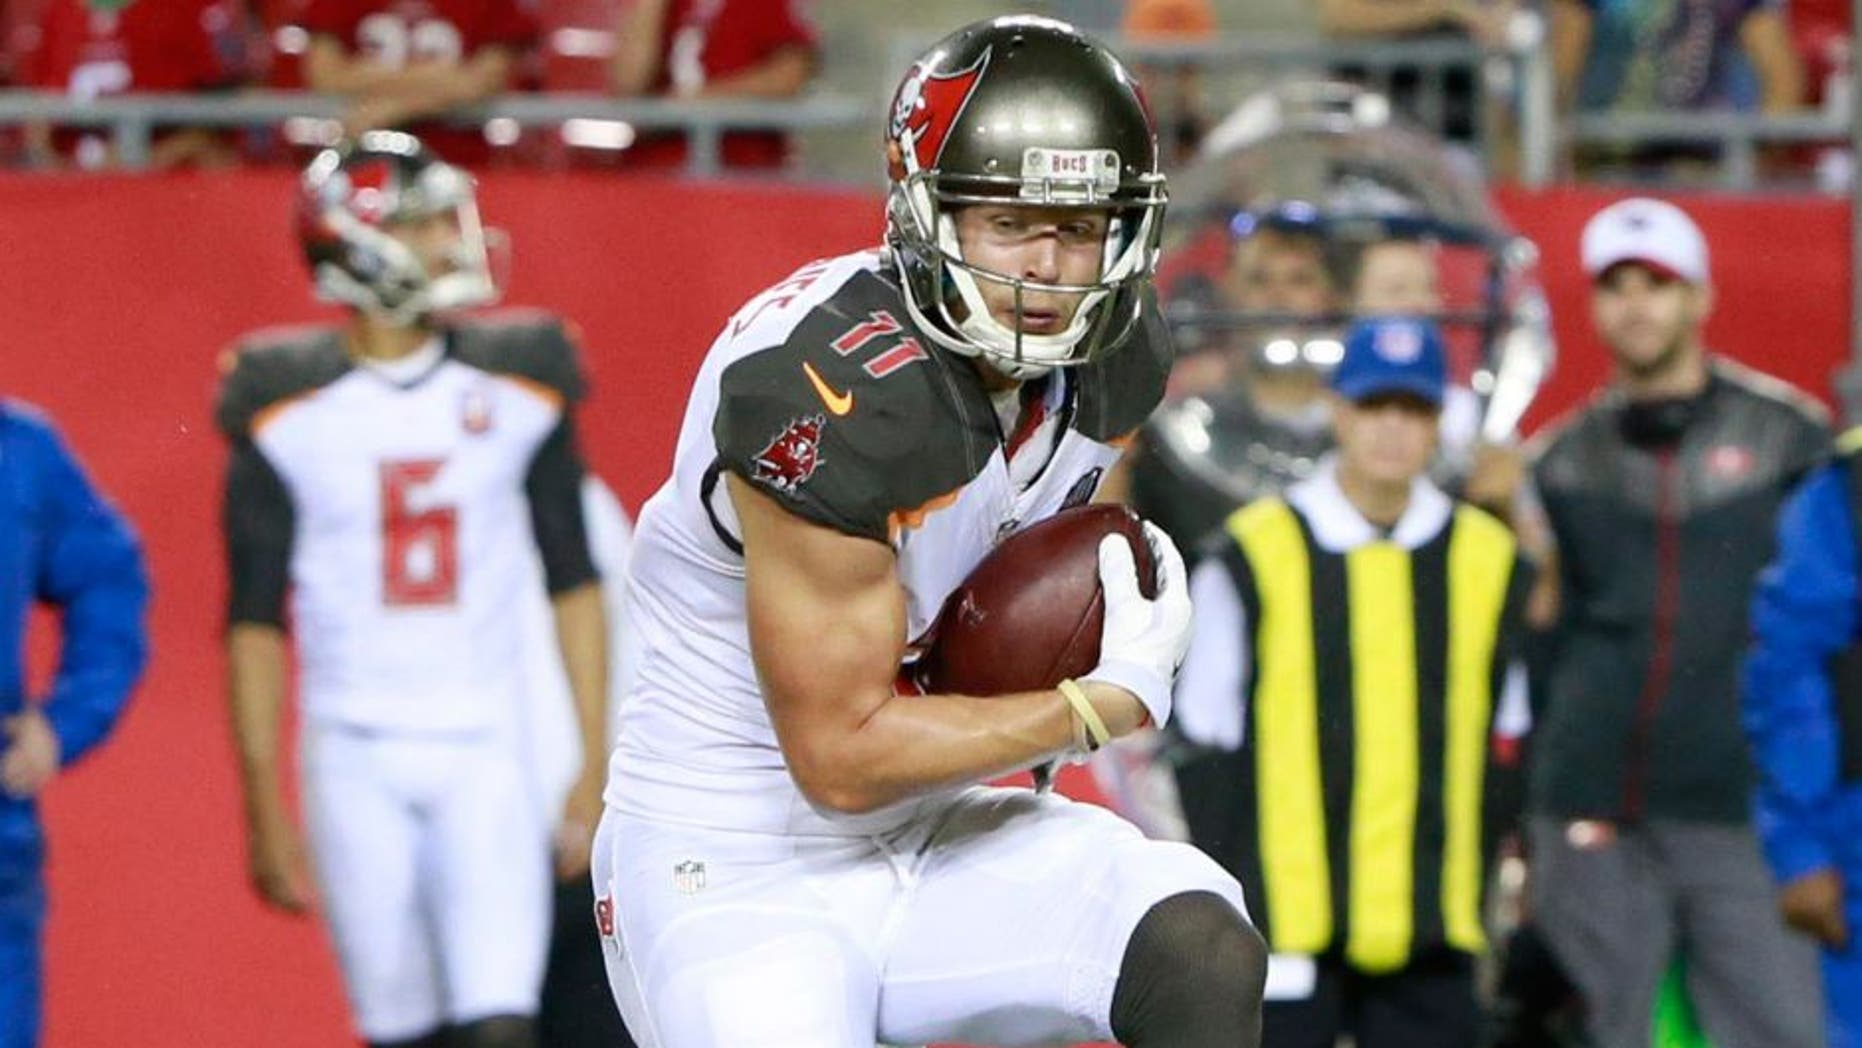 Aug 29, 2015; Tampa, FL, USA; Tampa Bay Buccaneers wide receiver Adam Humphries (11) runs with the ball against the Cleveland Browns during the second half at Raymond James Stadium. Cleveland Browns defeated the Tampa Bay Buccaneers 31-7. Mandatory Credit: Kim Klement-USA TODAY Sports